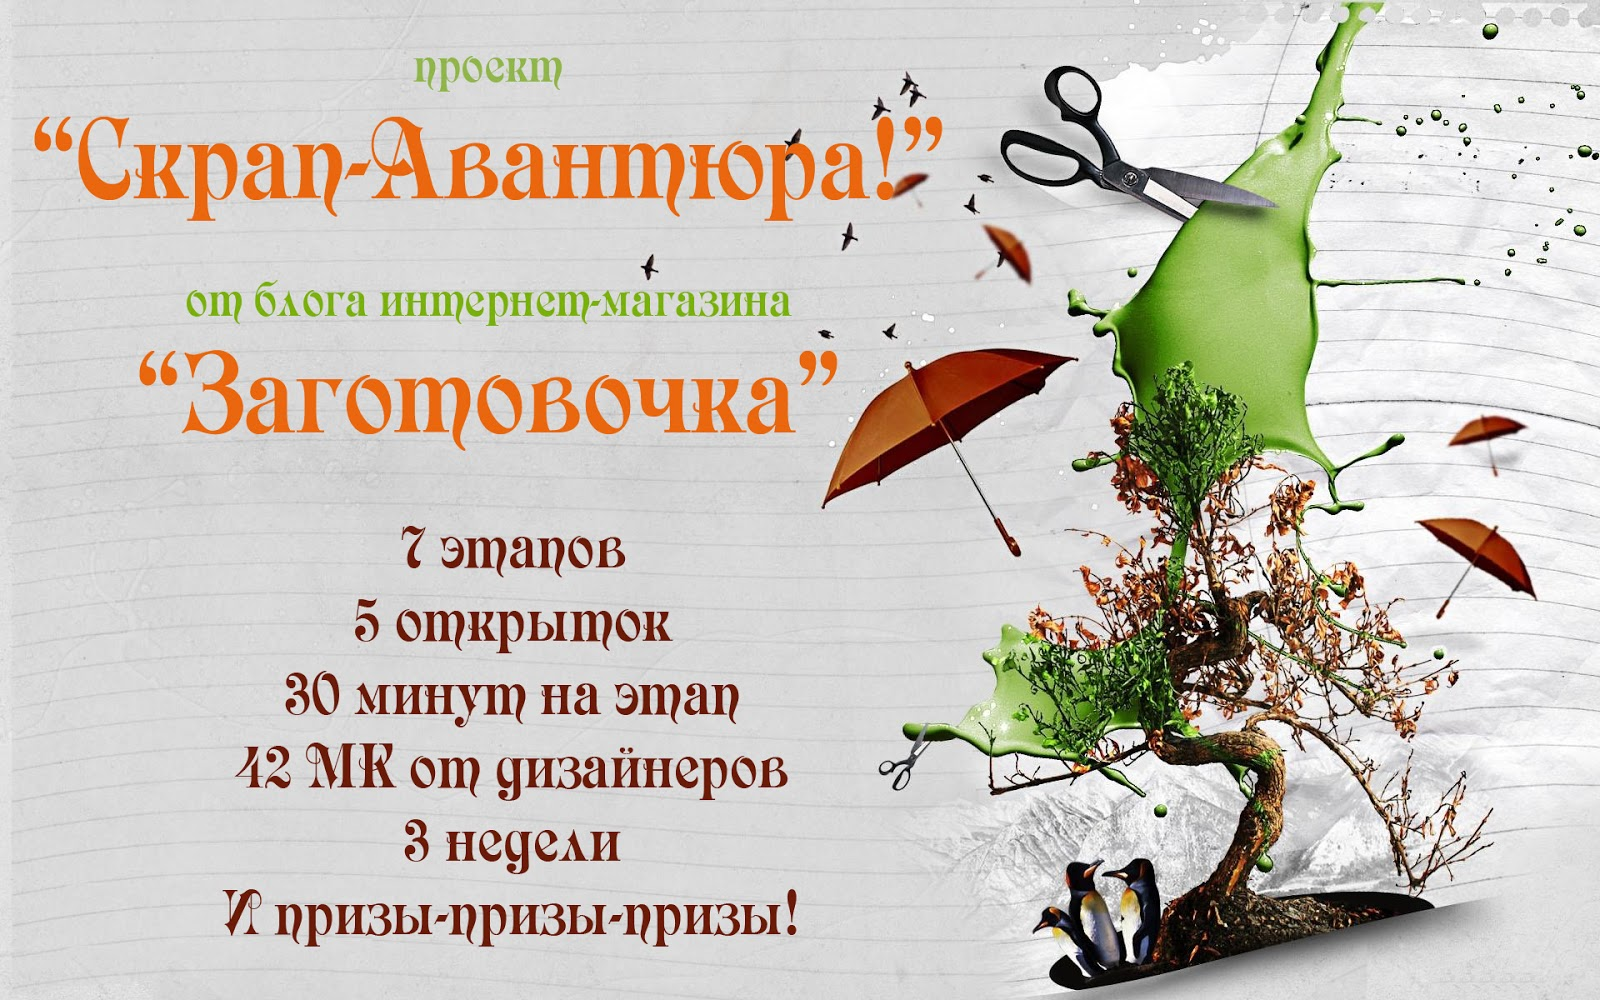 http://zagotovo4ka.blogspot.ru/2014/08/blog-post.html